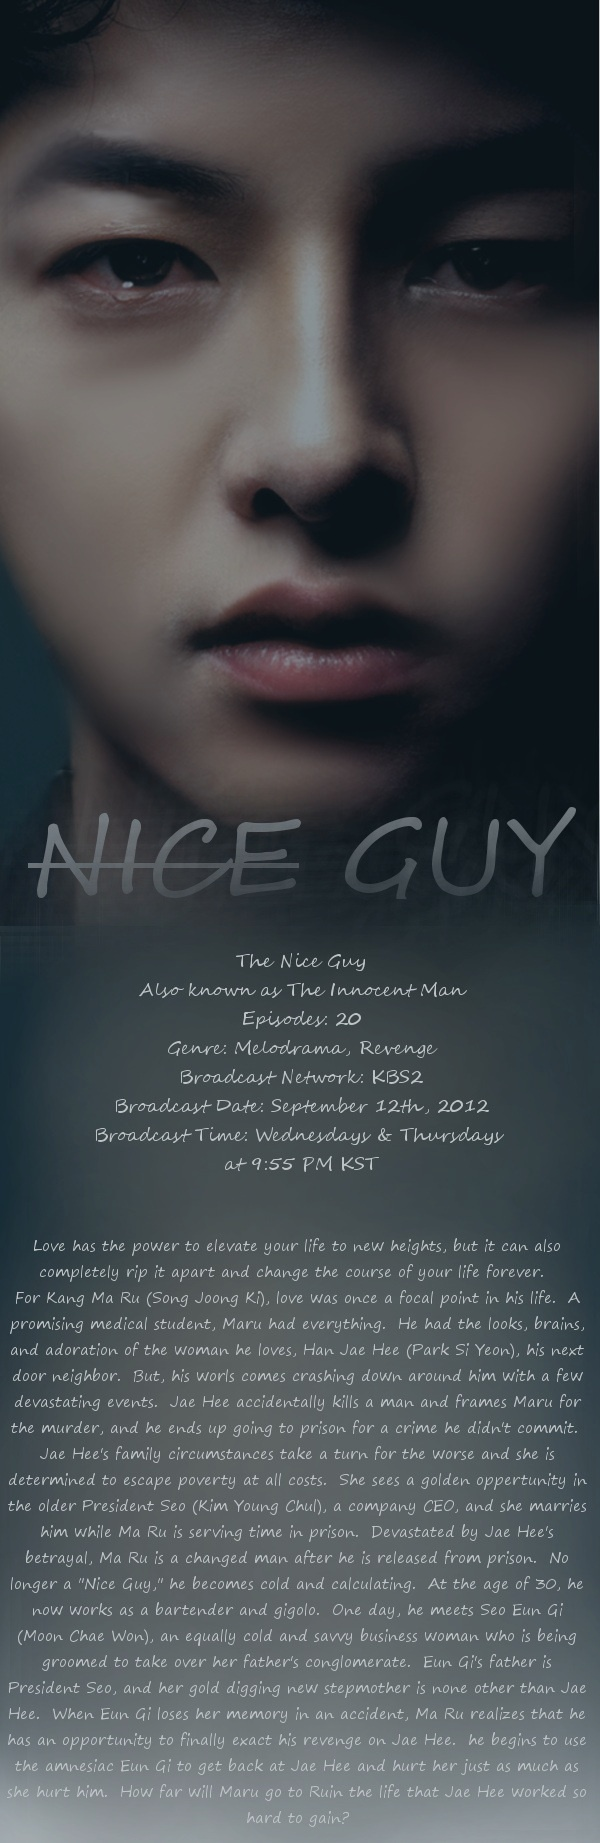 Korean Drama - Nice Guy... so amazing!